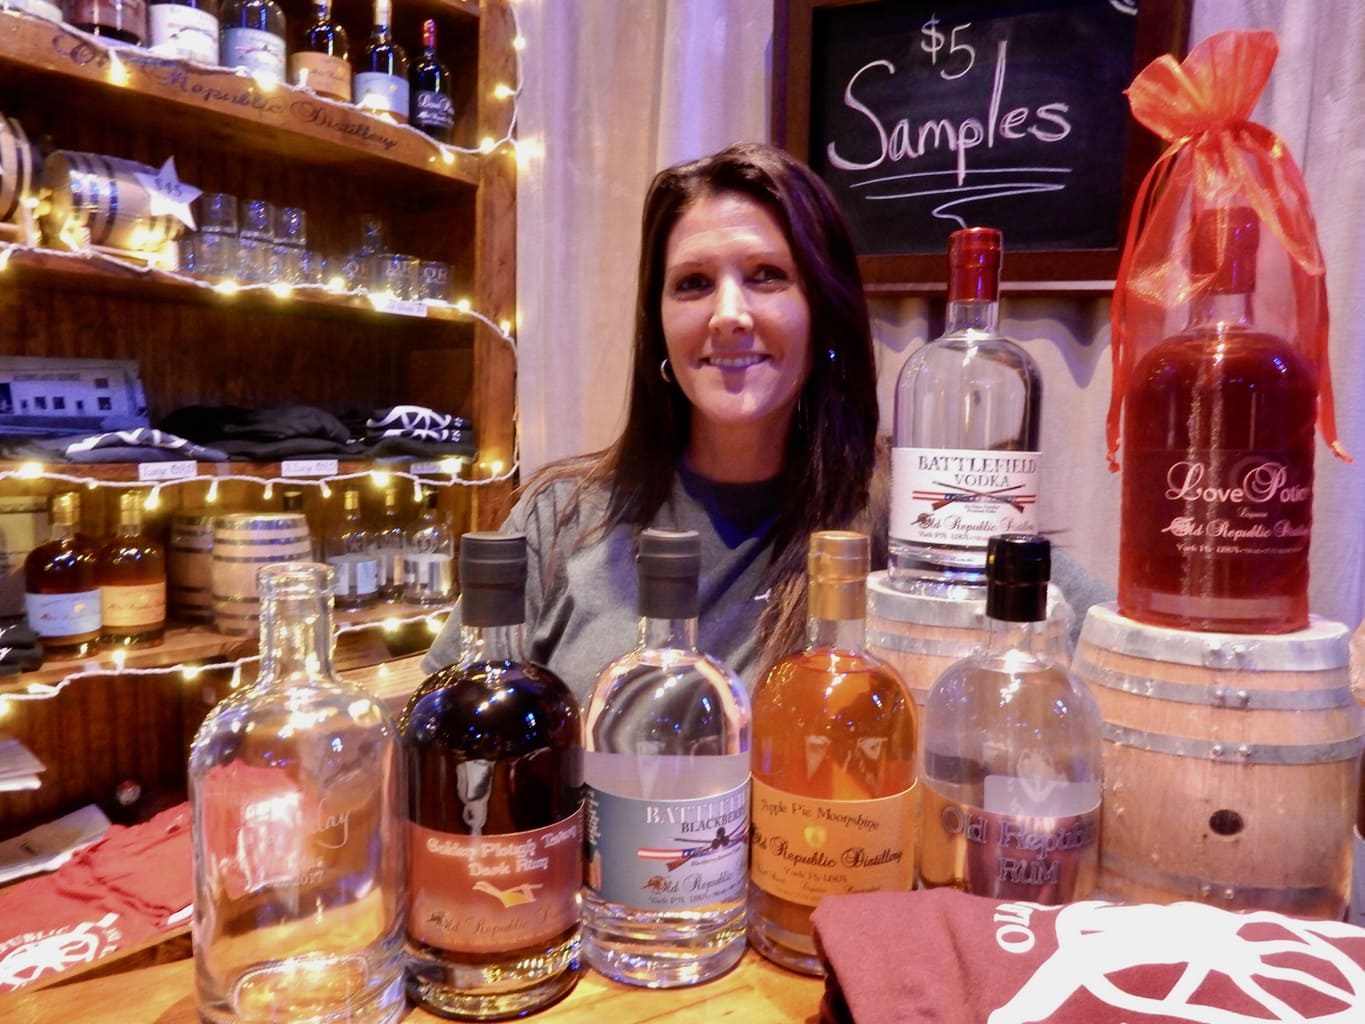 Denise Mathias, Old Republic Distillery York PA